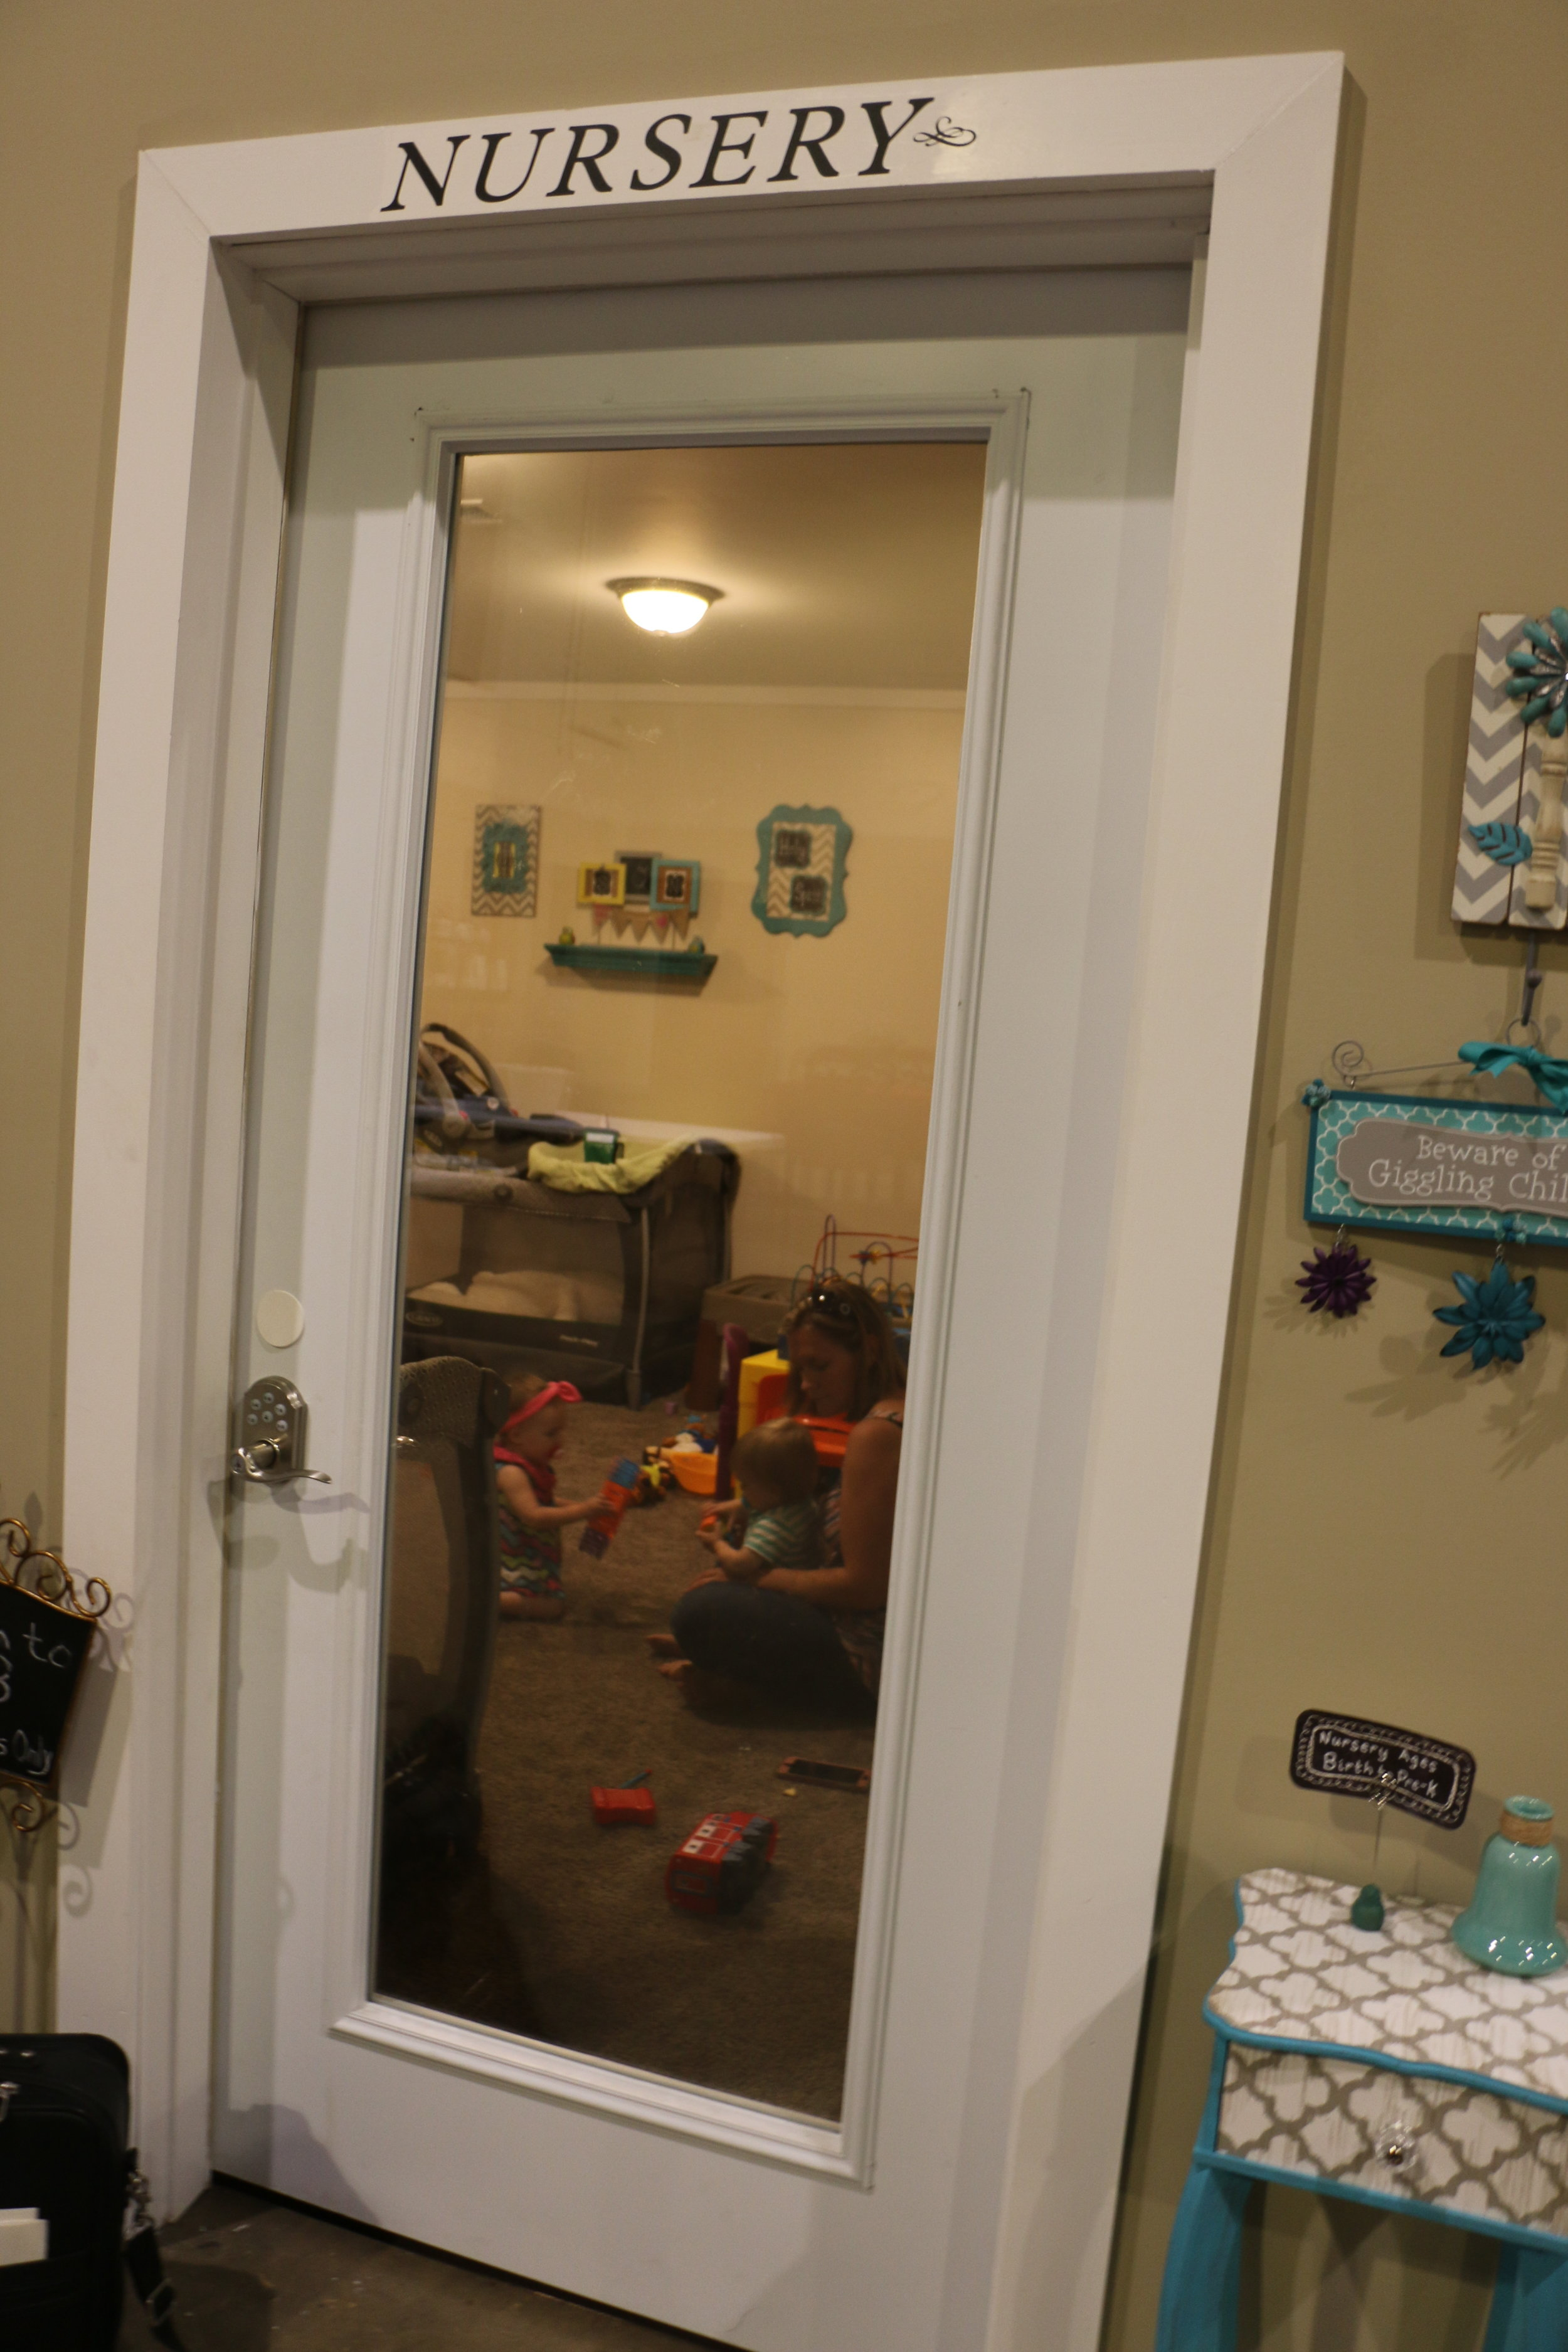 Nursery - During Sunday morning and evening worship, space is provided for Newborns-3yrs old. There are cribs, changing table, and rockers.